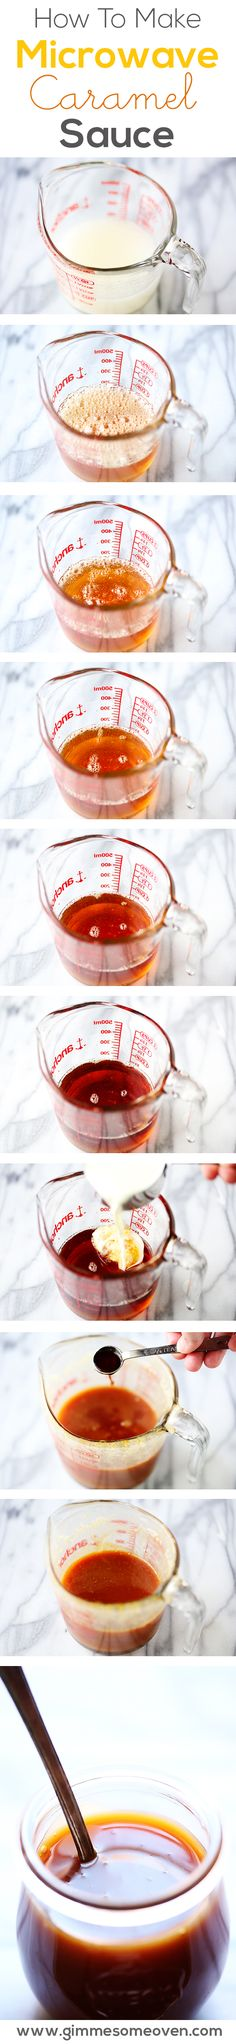 Make homemade caramel sauce in the microwave in just 10 minutes! | gimmesomeoven.com